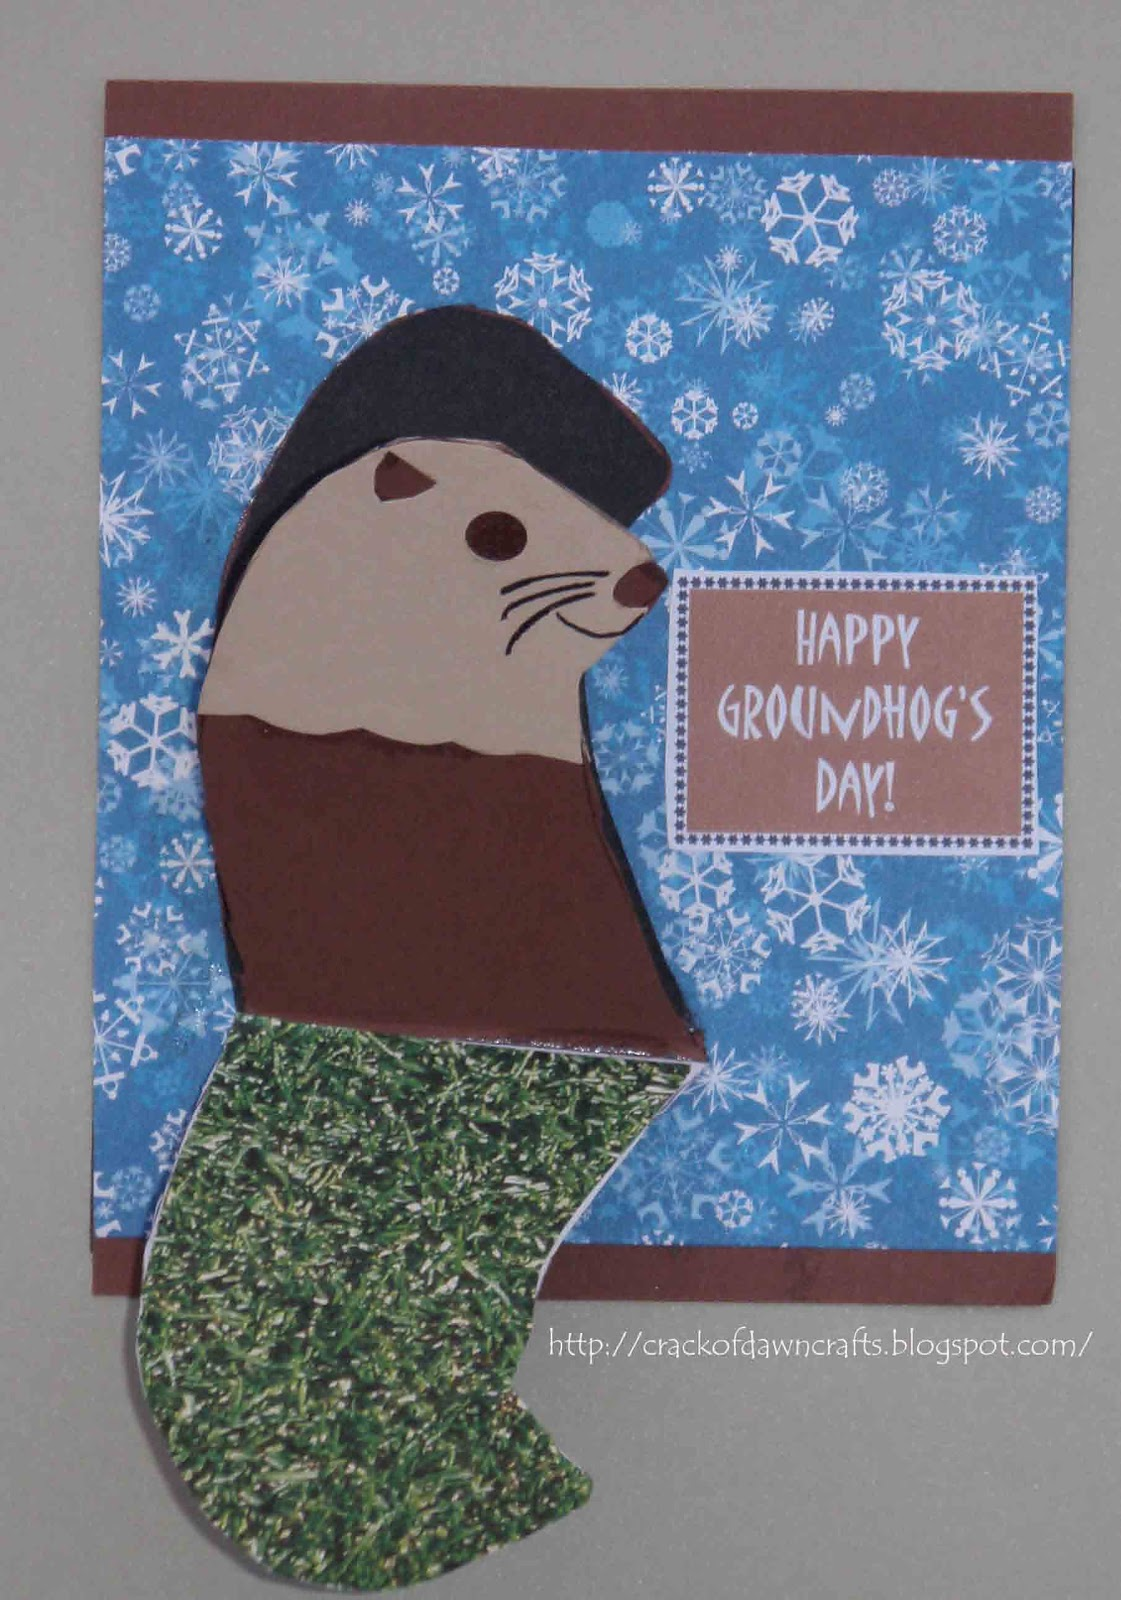 Crack Of Dawn Crafts Groundhogs Day Greetings